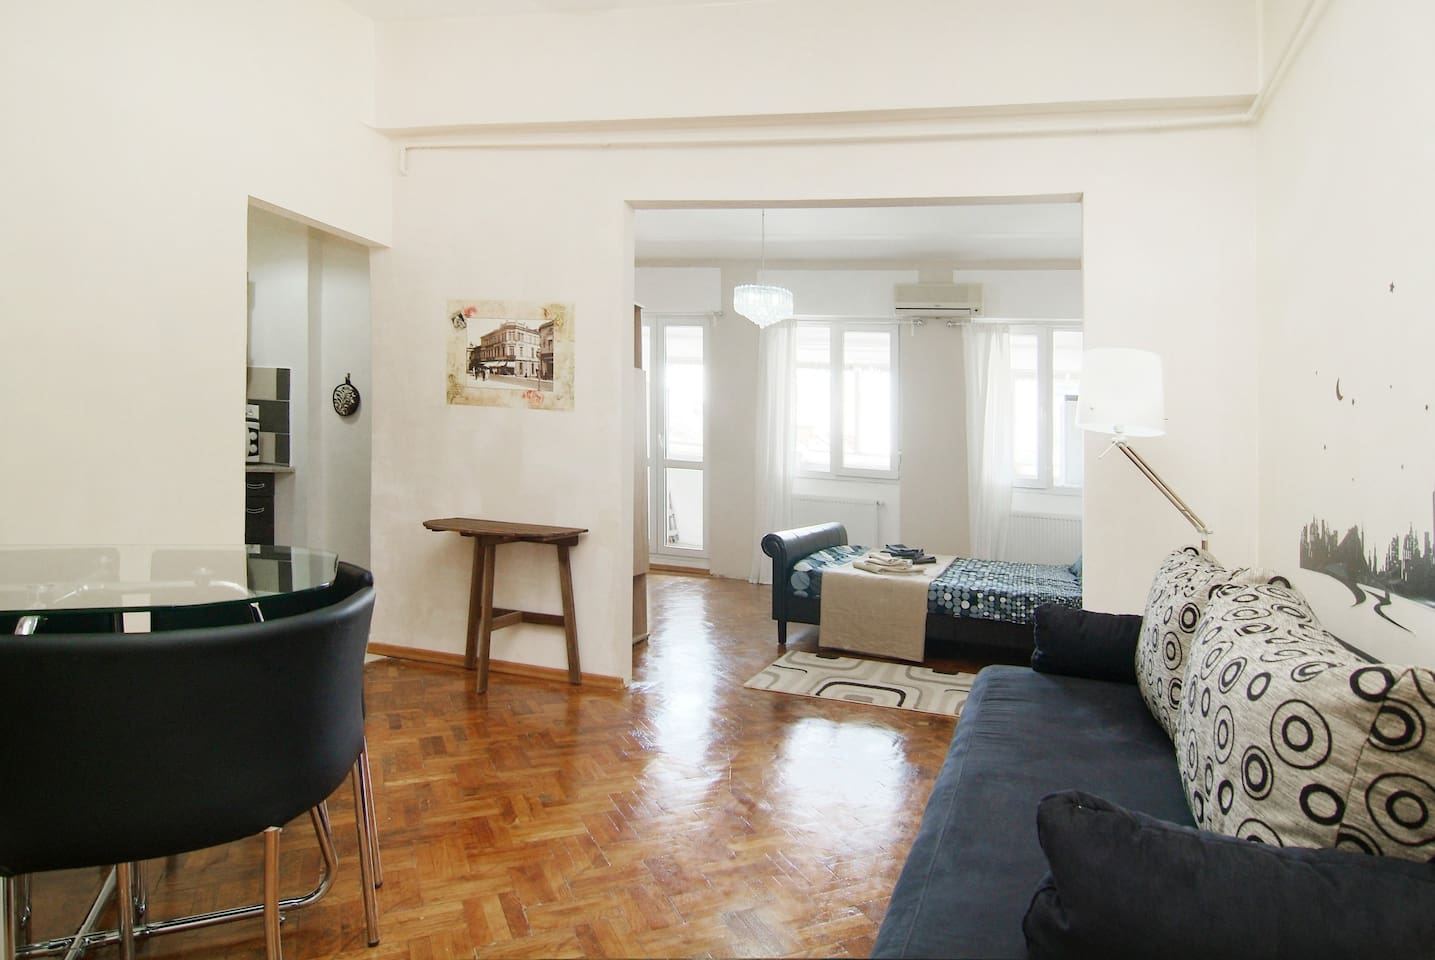 50 sqm apartment with 2 shared rooms  double bed and sofa bed for 2 persons